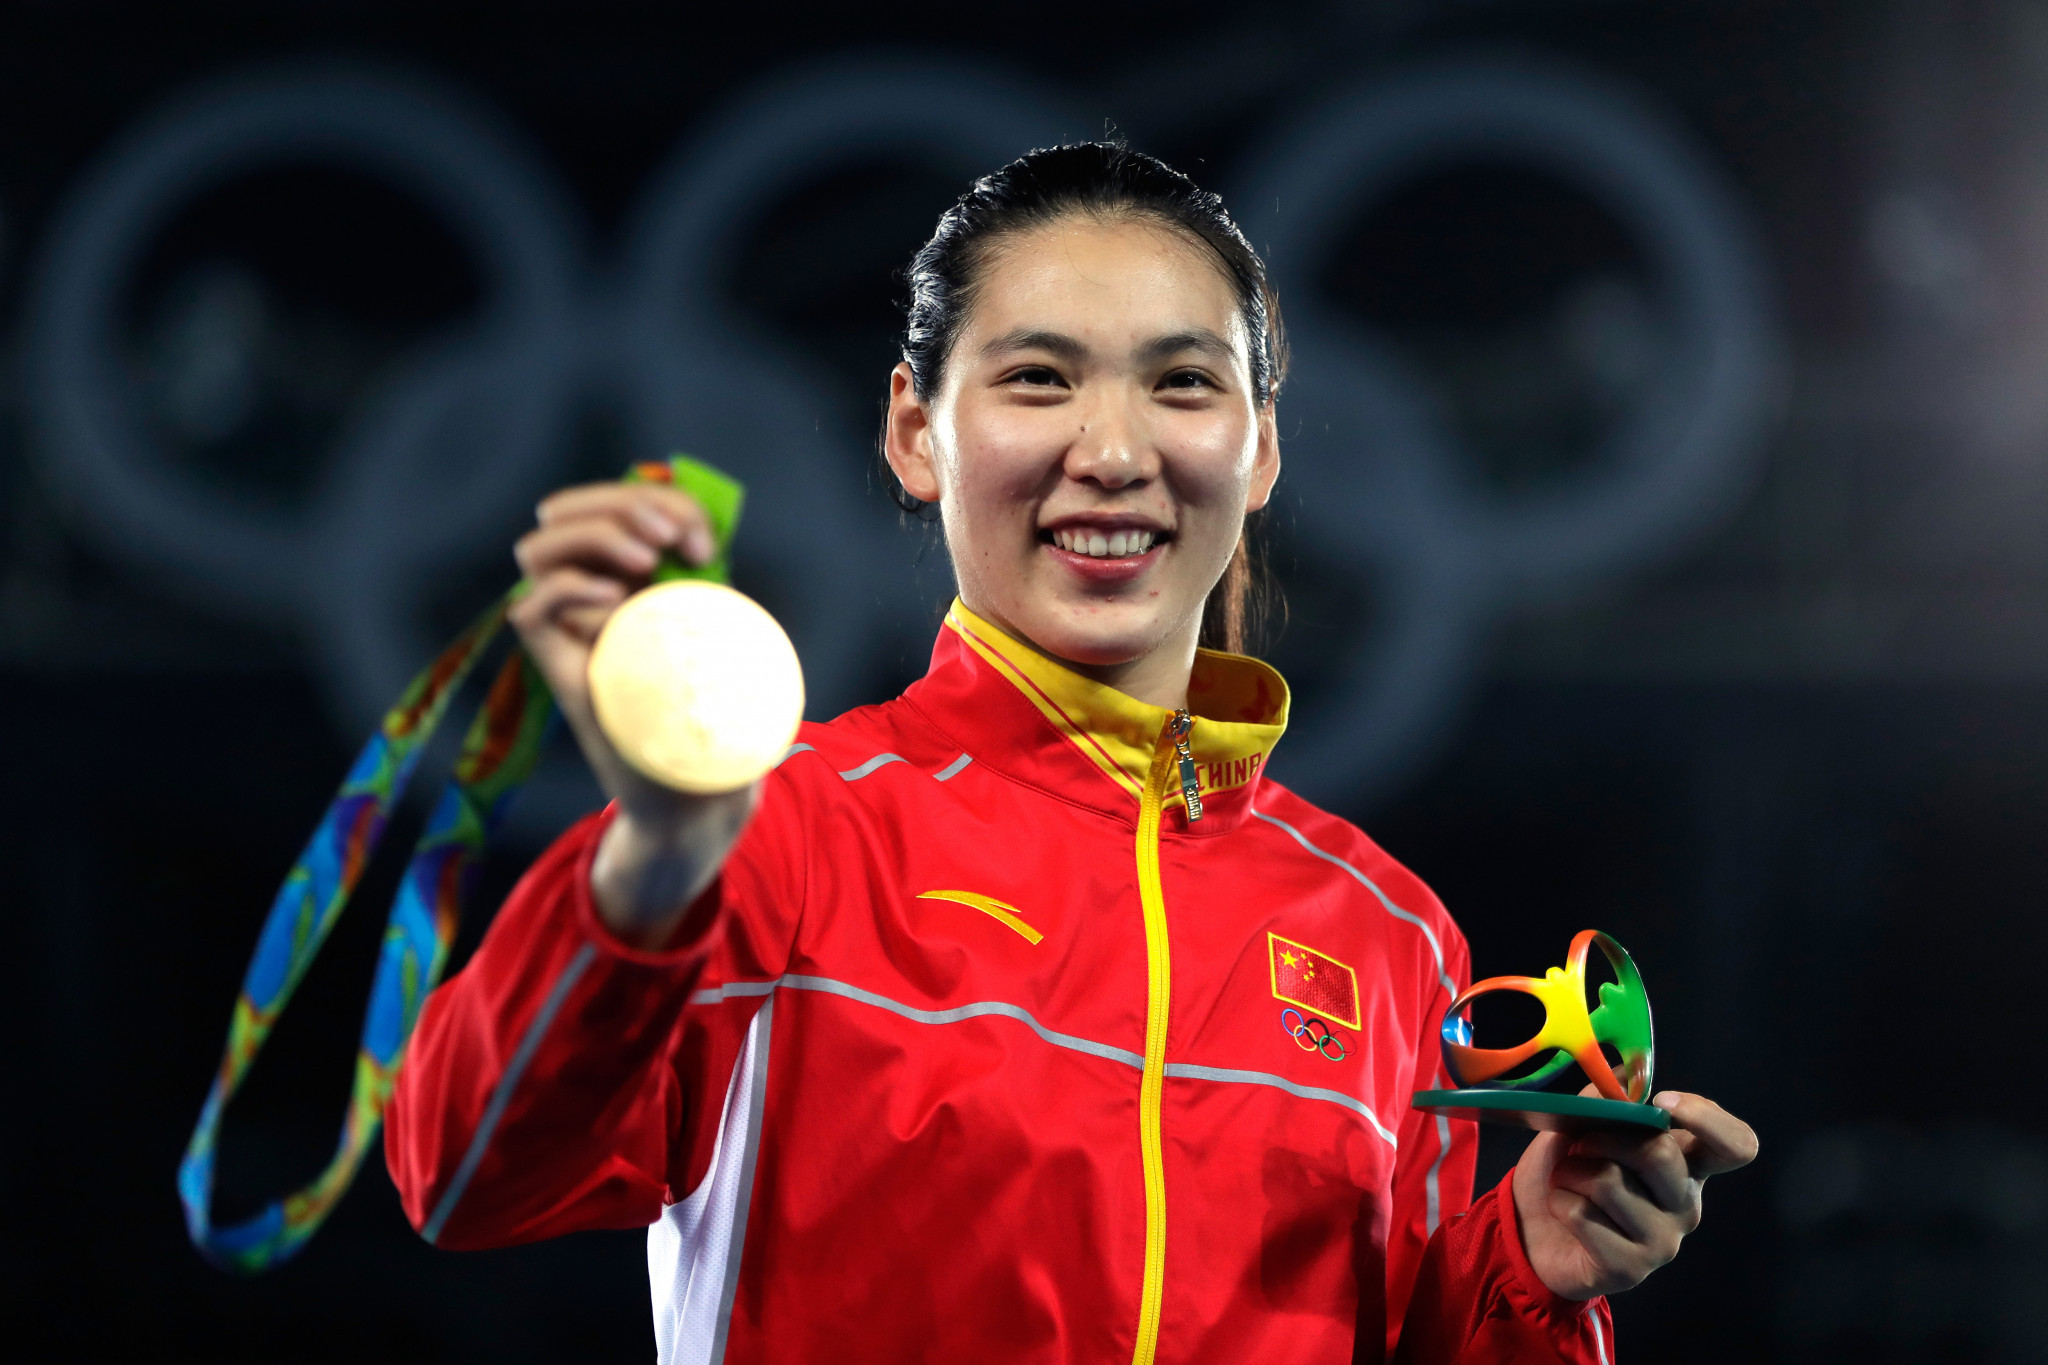 Zheng Shuyin was one of China's Olympic gold medallists in taekwondo at Rio 2016 ©Getty Images